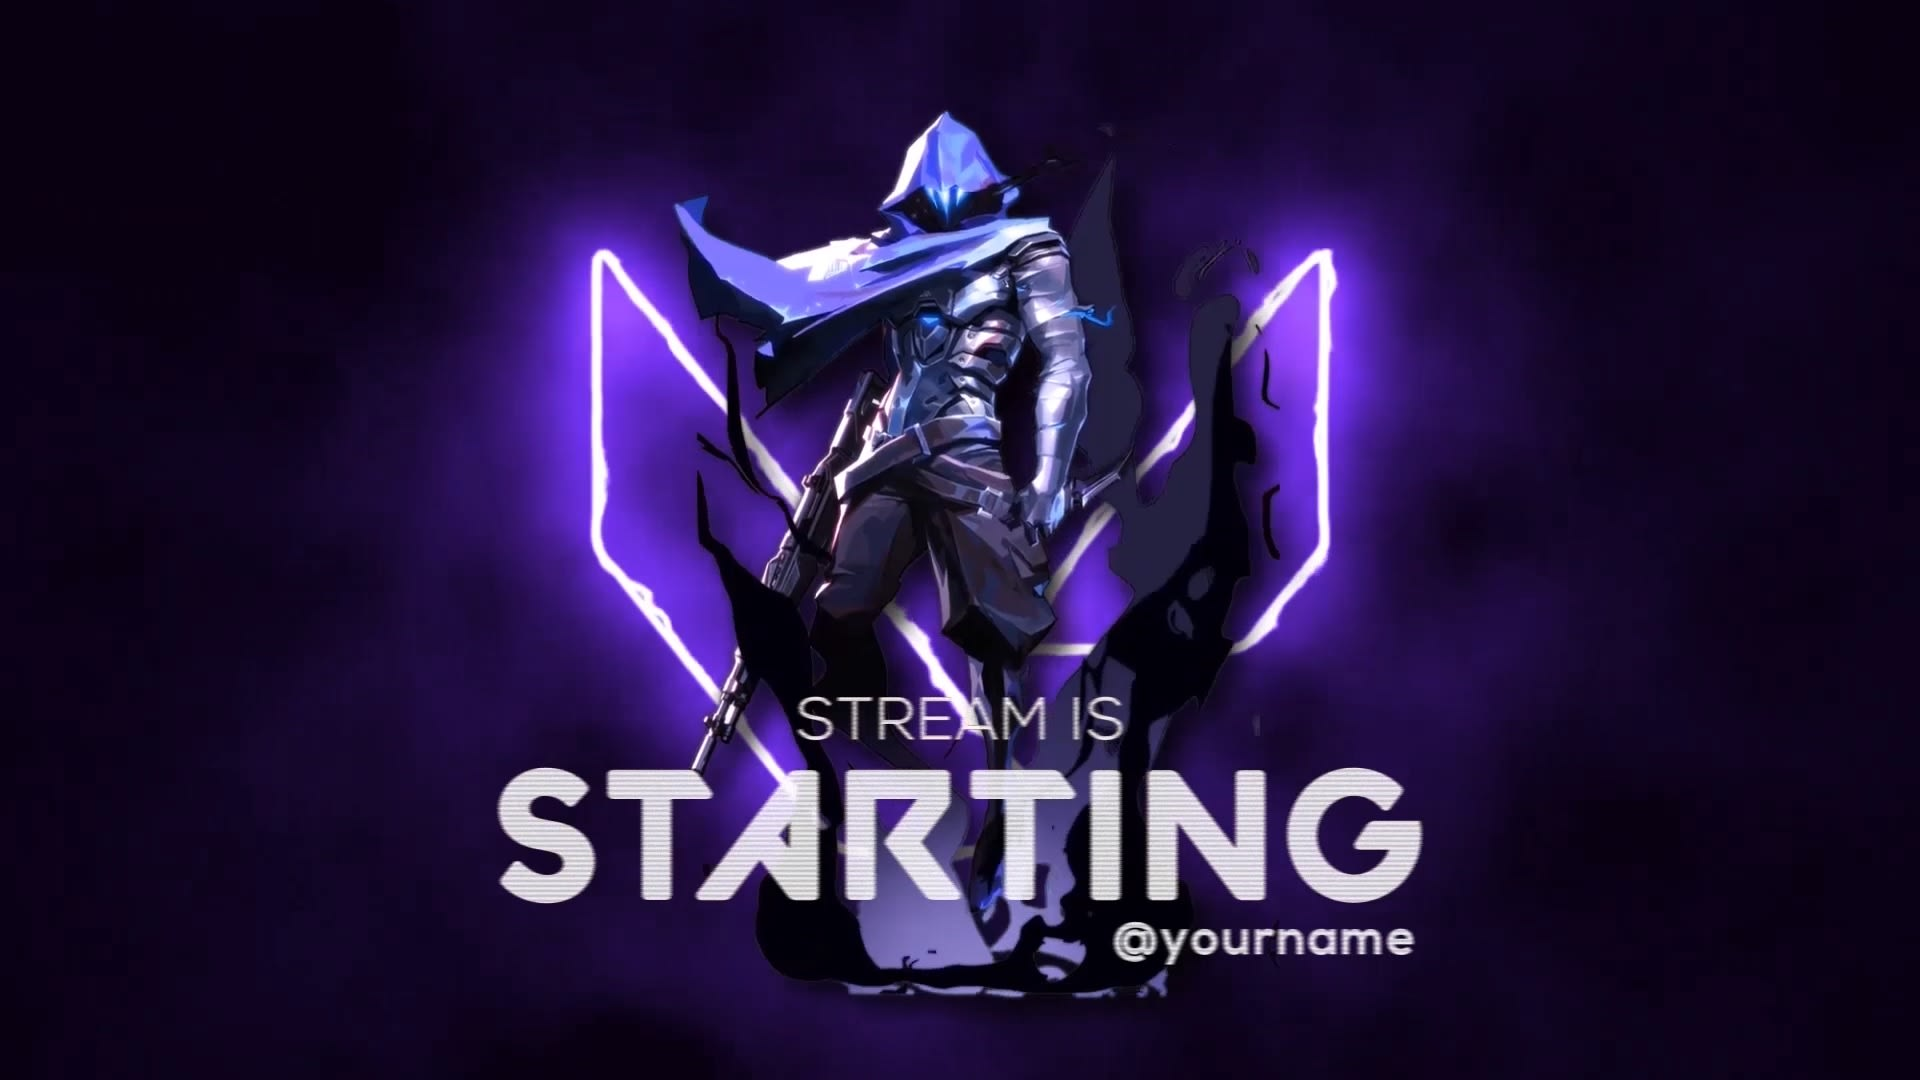 Create An Animated Stream Starting Soon Screen For Streaming By Paul Creations